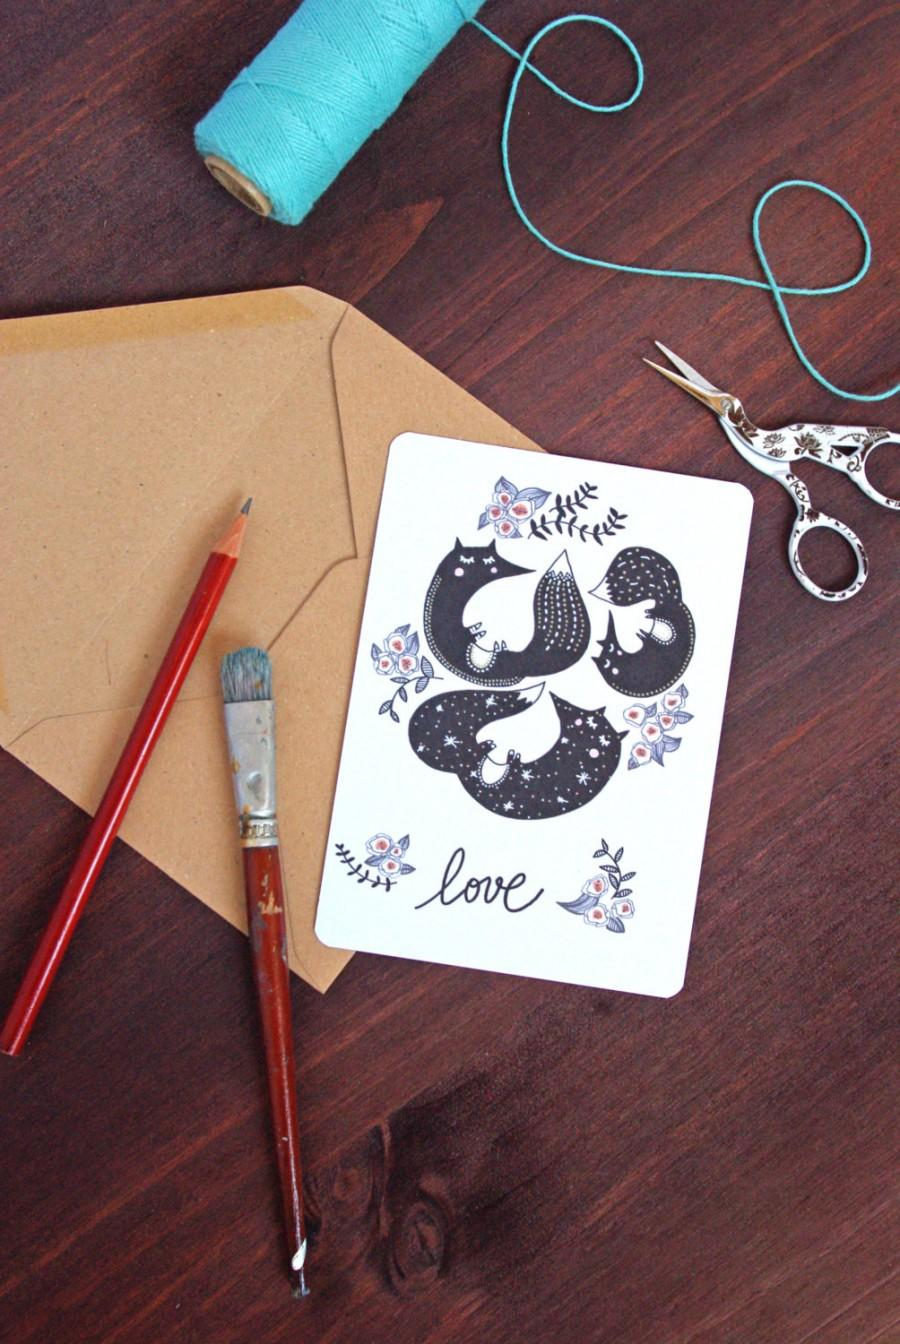 Mariage - Je t'aime Love French Fox Postcard - Free Shipping! Valentine's Day / Wedding